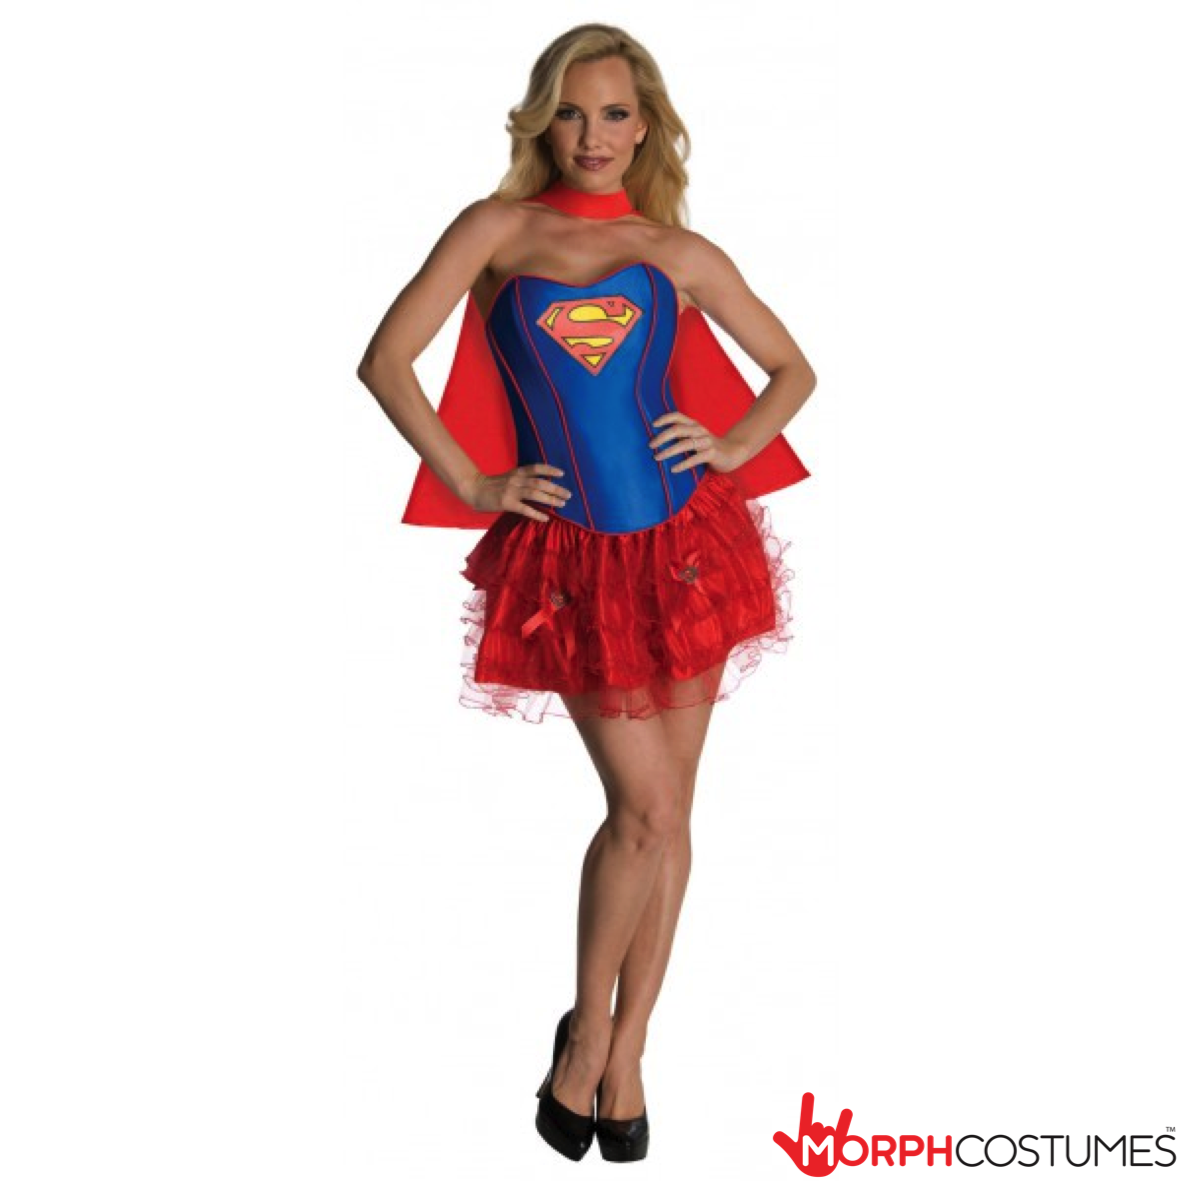 Hen Do Fancy Dress Theme Ideas: Hen Party Costume Inspiration: Supergirl Corset Costume